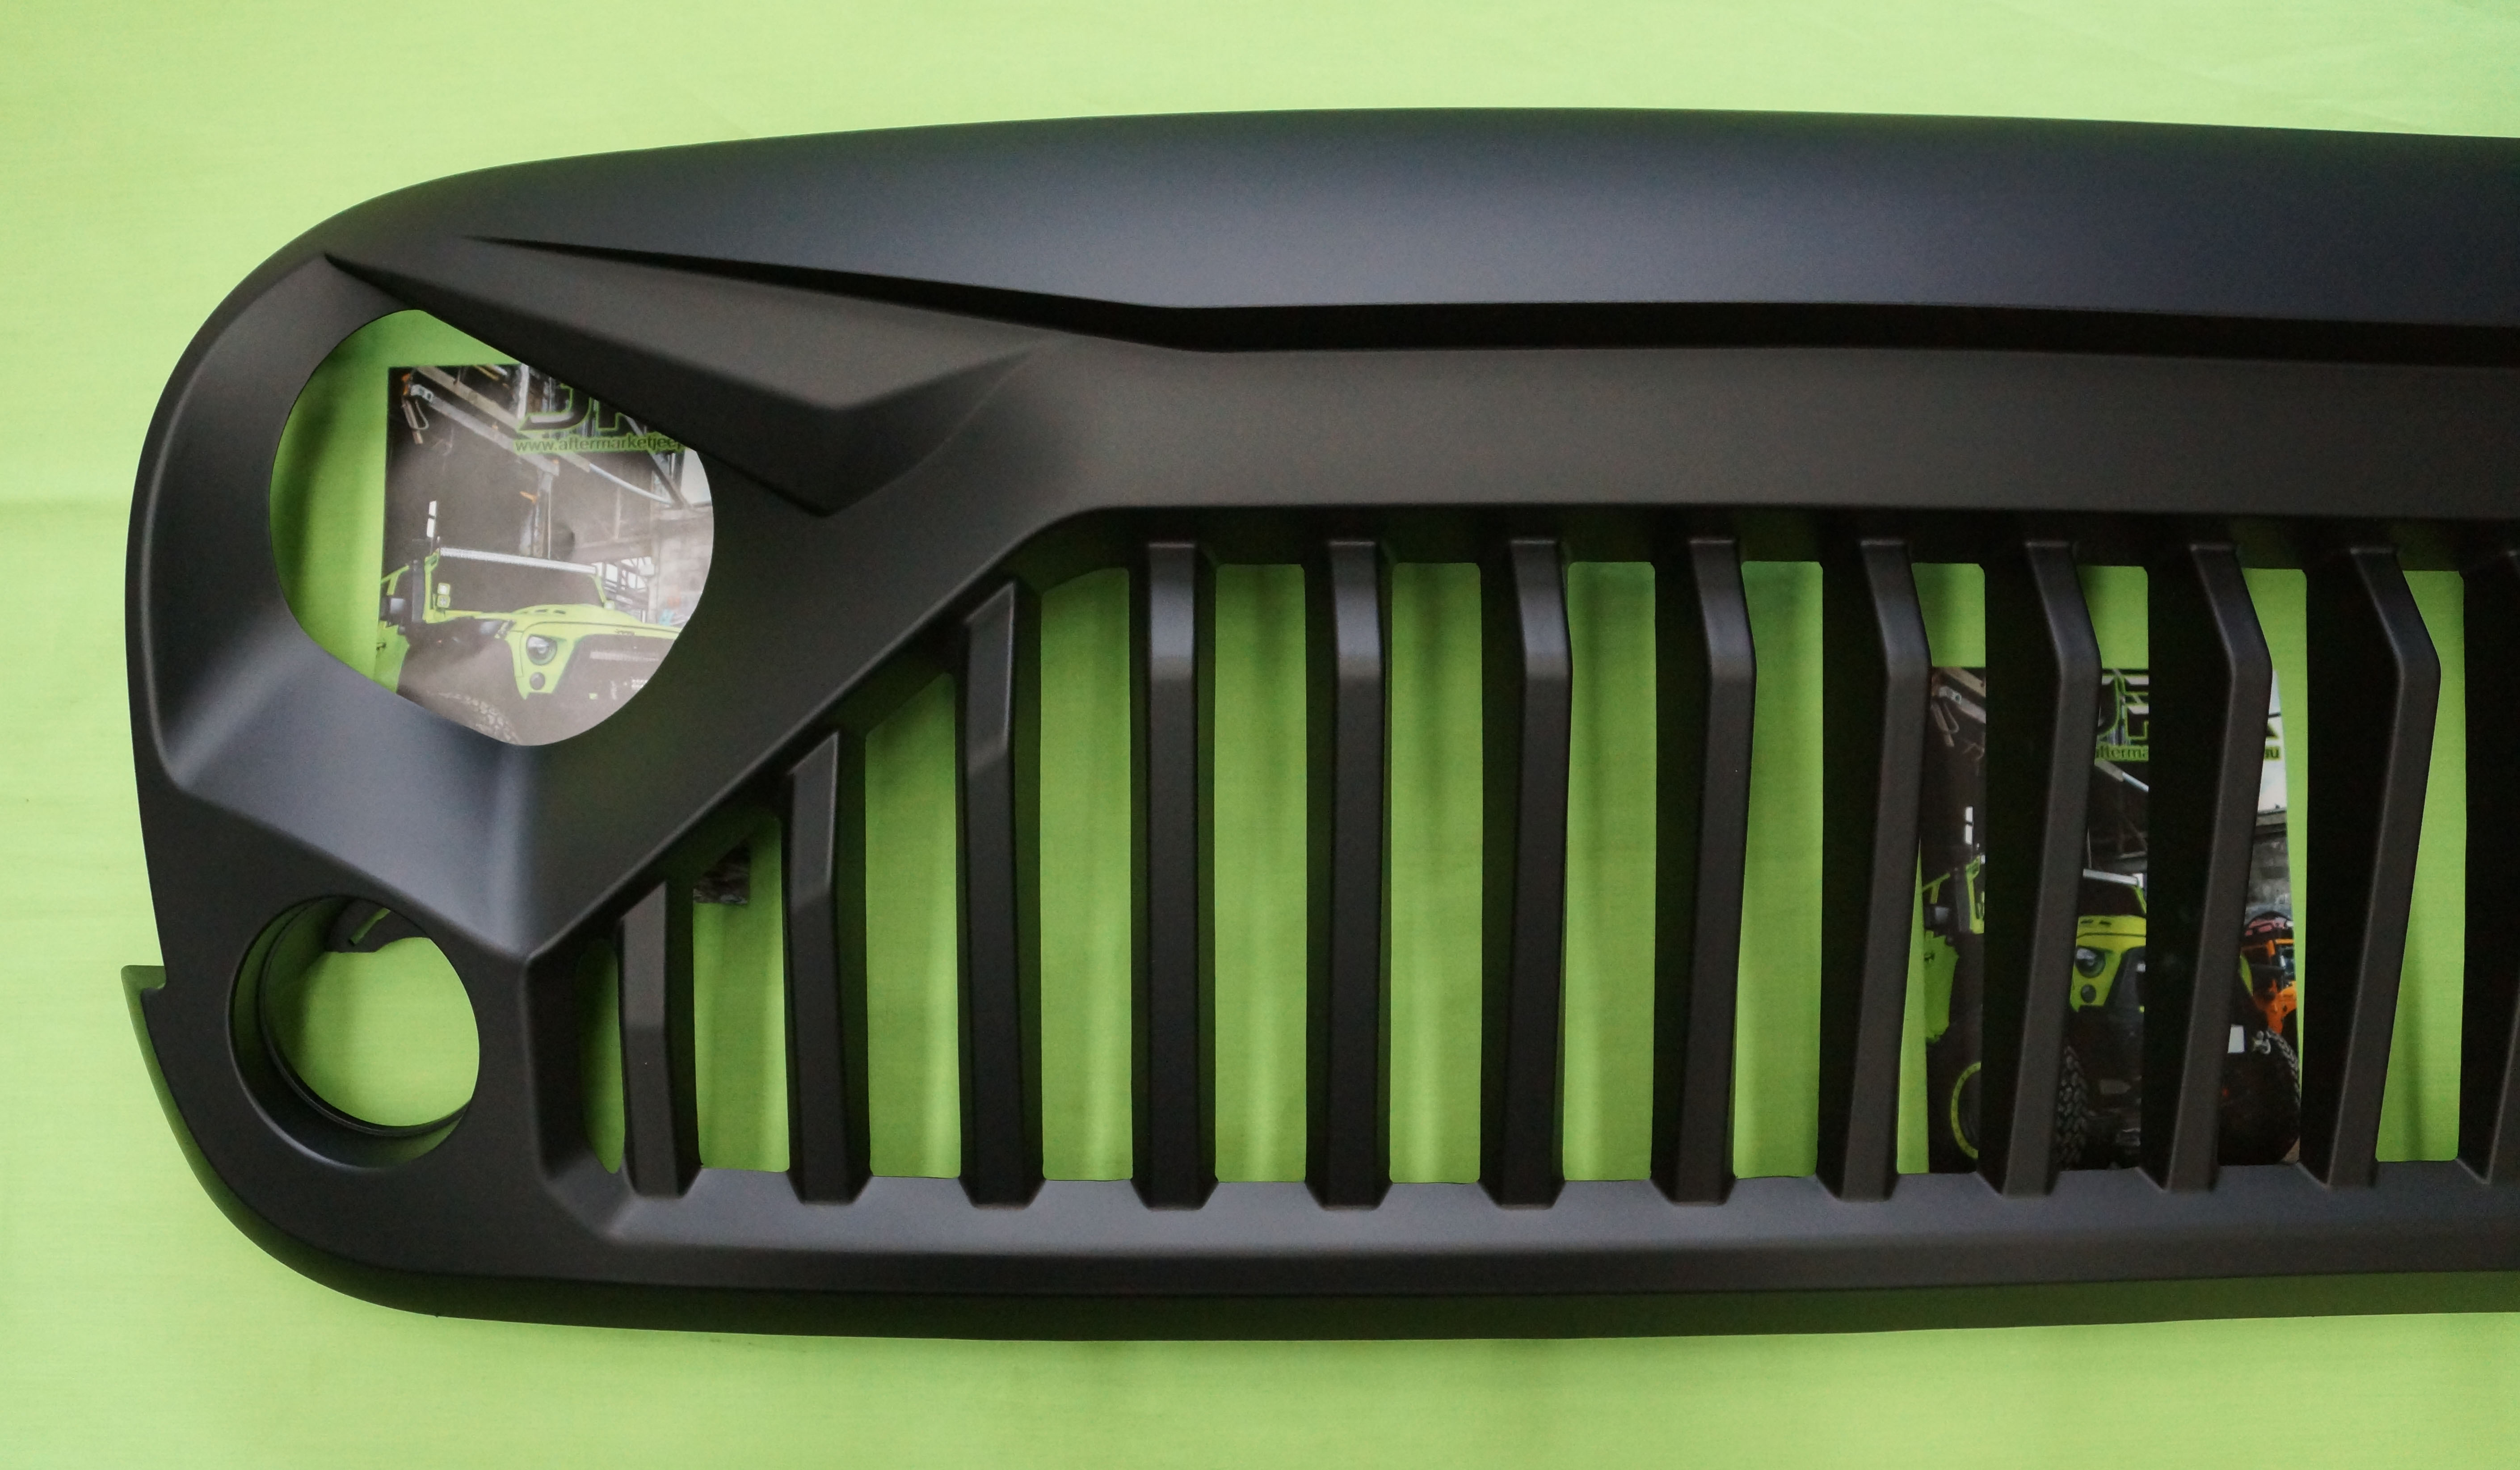 Jeep Cj7 Parts >> Jeep Wrangler Stormtrooper Angry Grill / Grille for JK WRANGLER 07+ | Aftermarket Jeep Parts ...